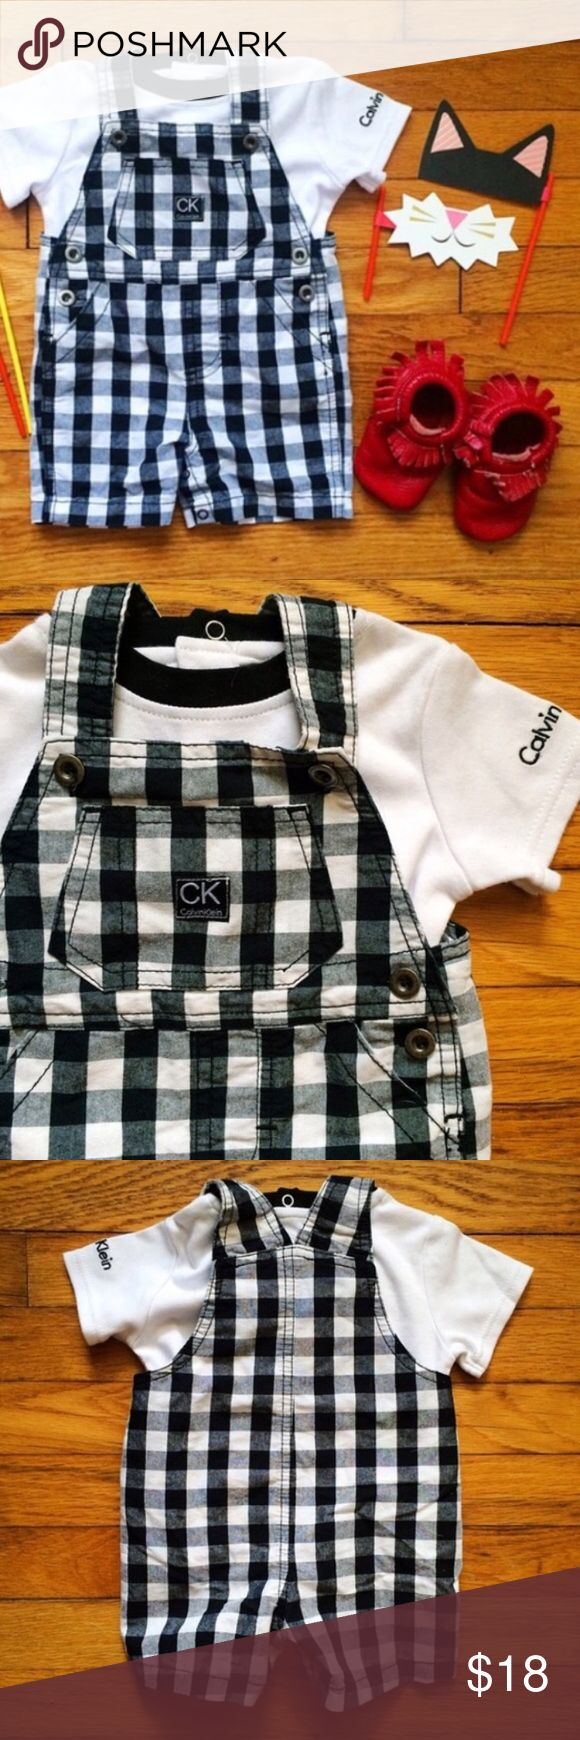 🔲 Gingham Glory Shortalls Gender neutral two piece set! Black and white gingham shortalls, and white tee with black collar trim. Snap crotch and 3 pockets. EUC. Calvin Klein Bottoms Overalls